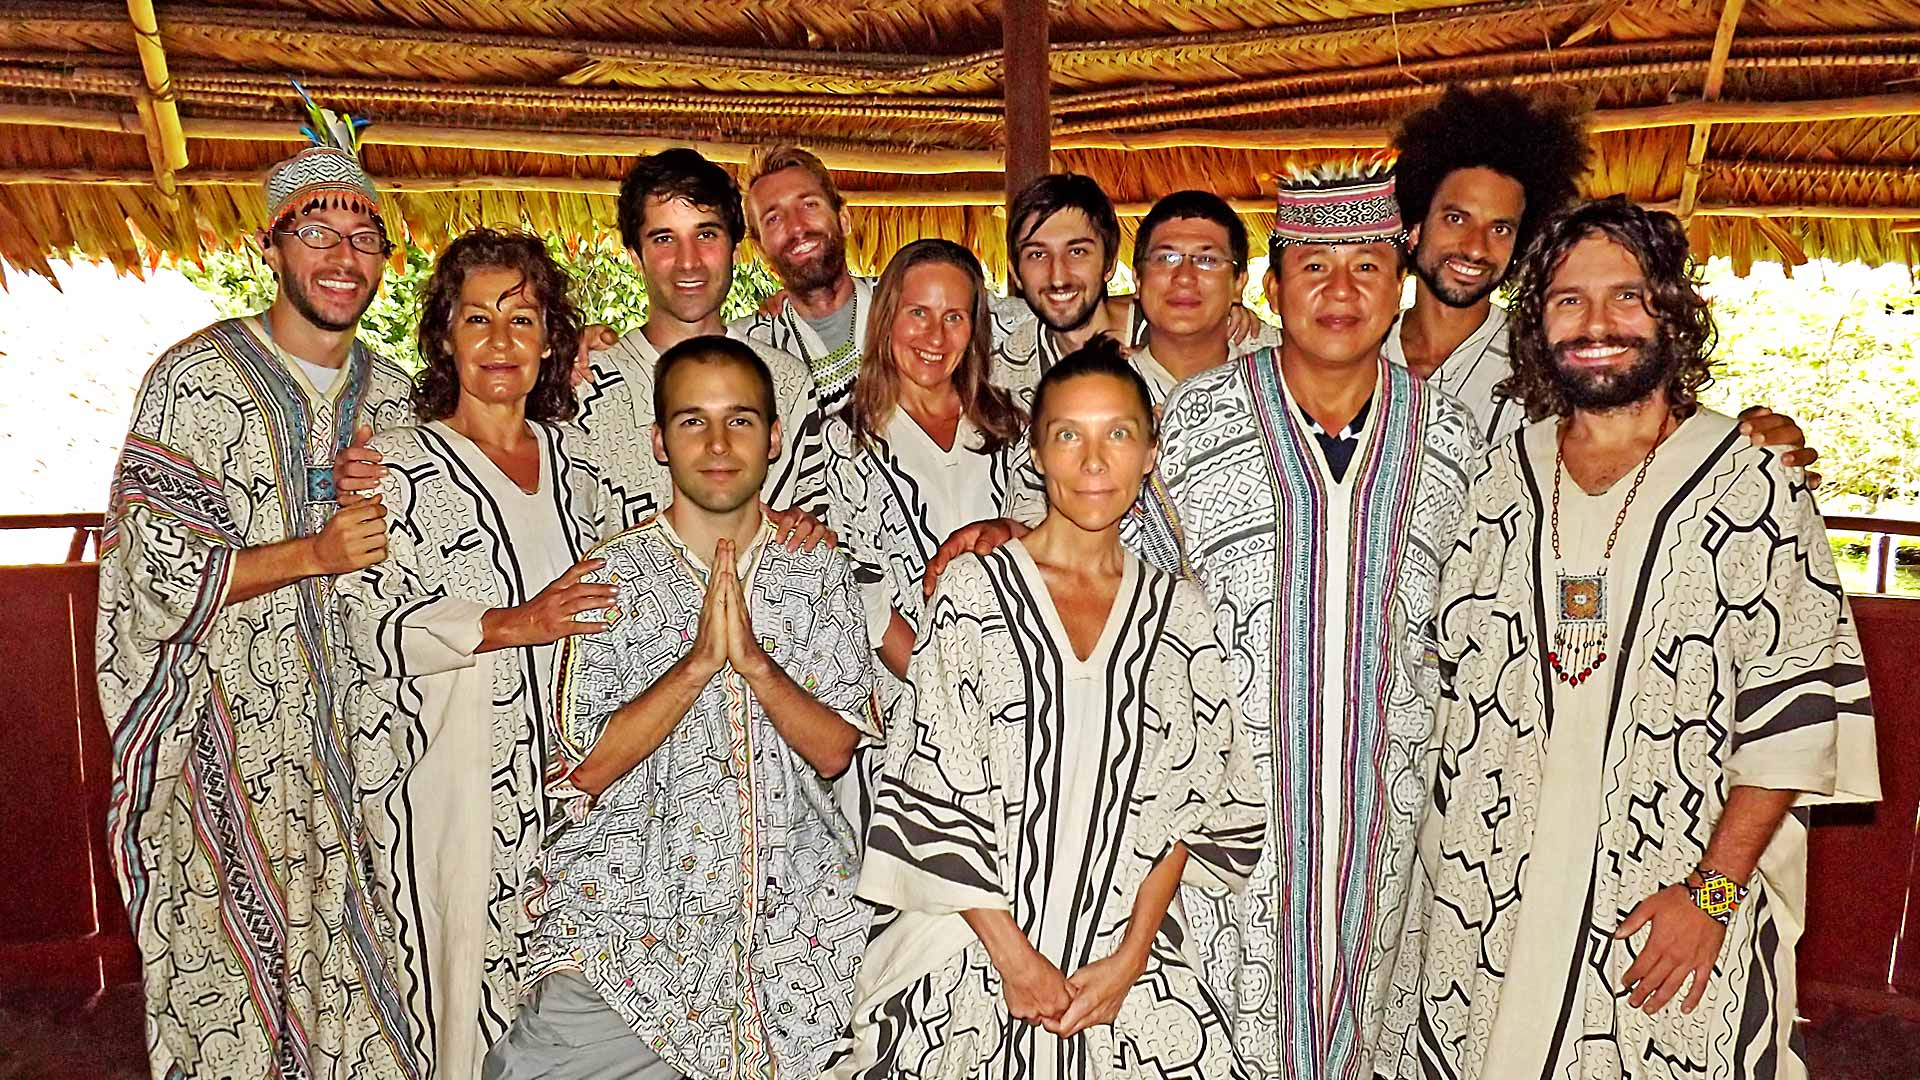 ayahuasca foundation's ayahuasca initiation courses in peru